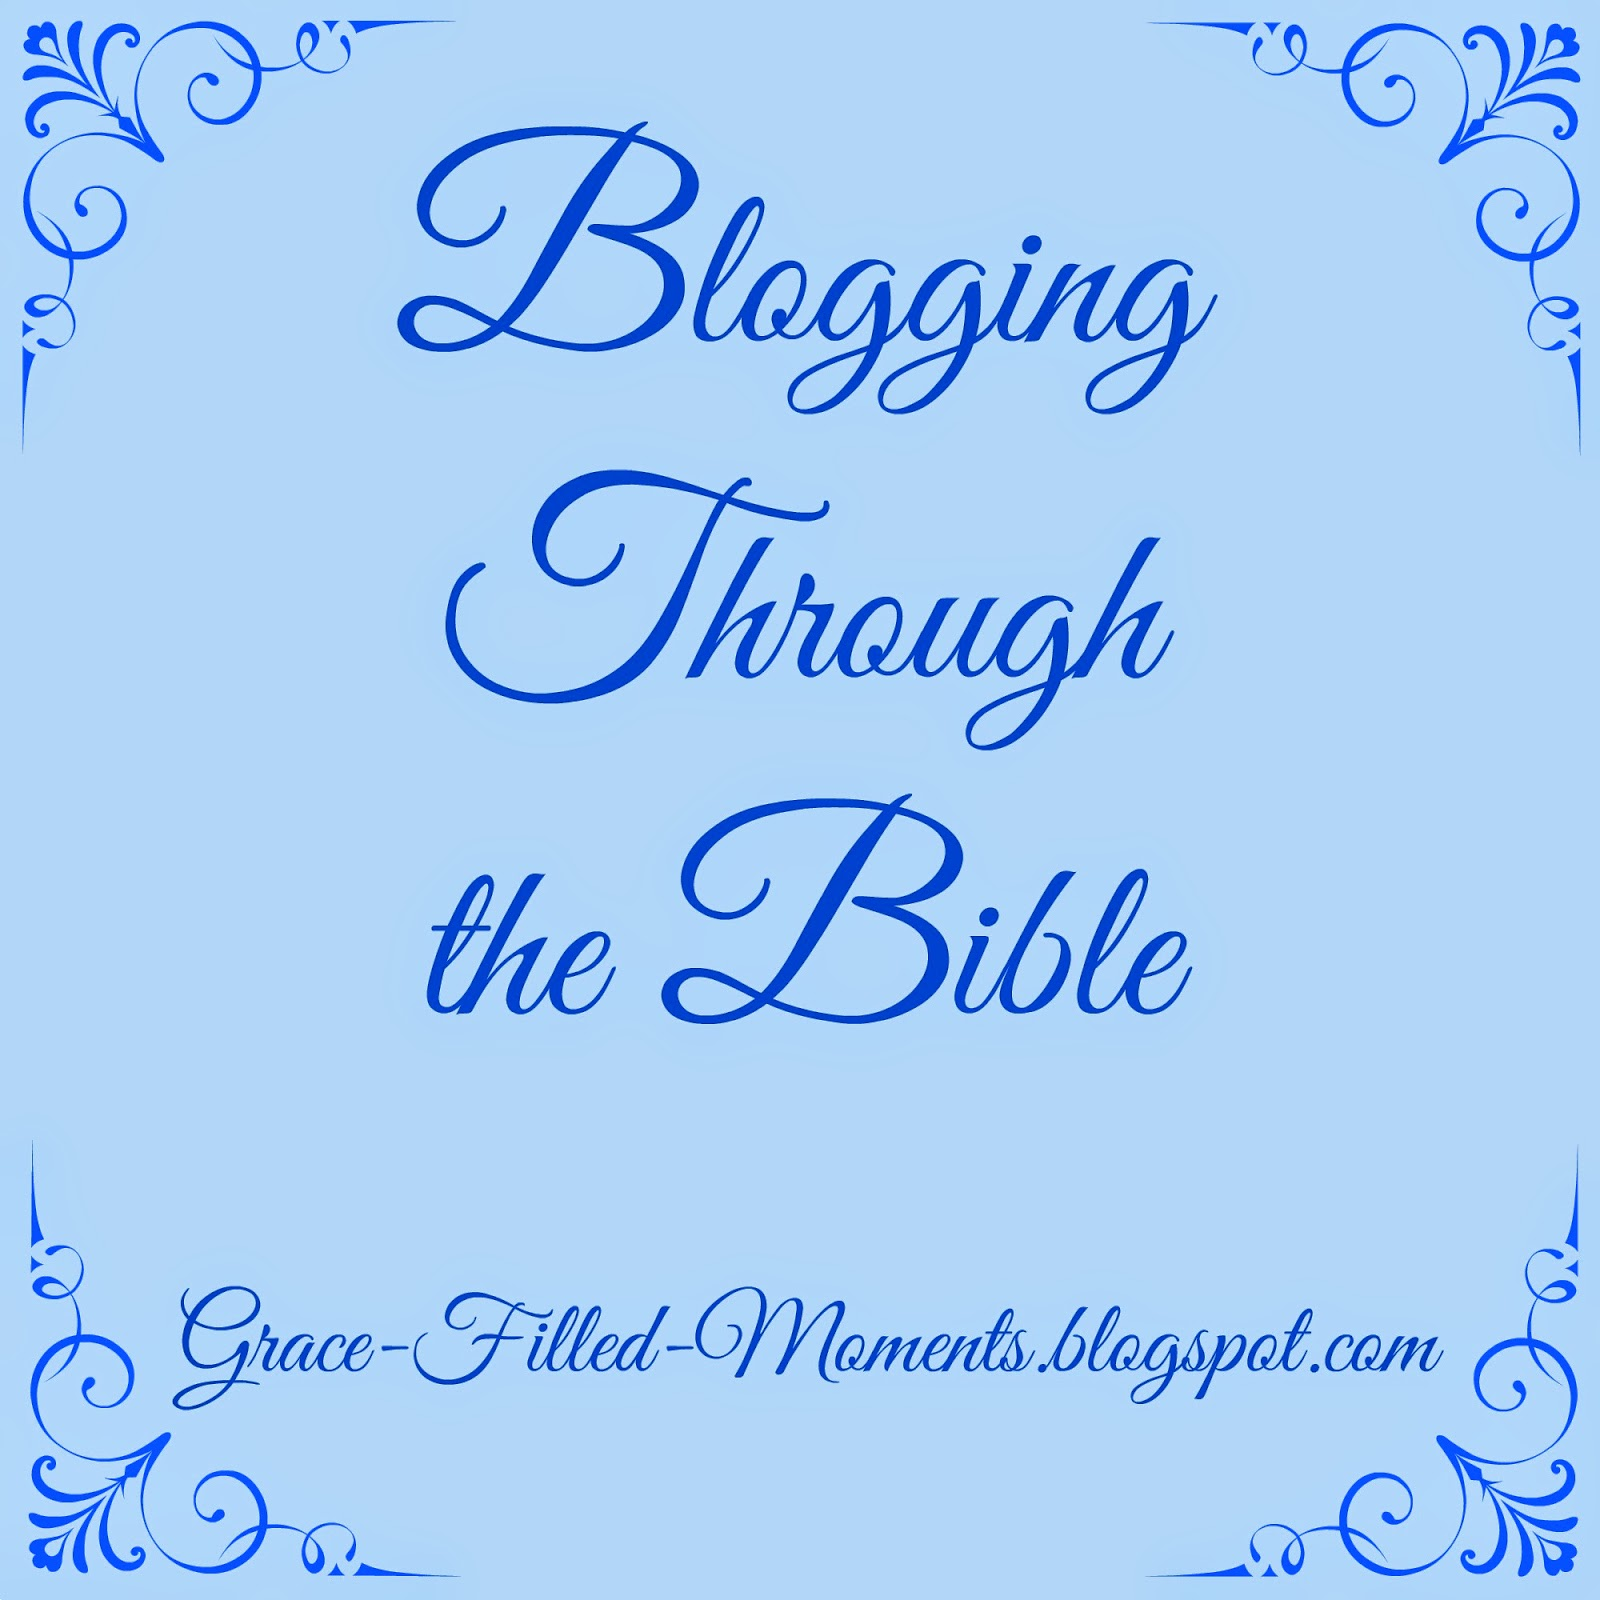 http://grace-filled-moments.blogspot.com/search/label/Blogging%20through%20the%20Bible